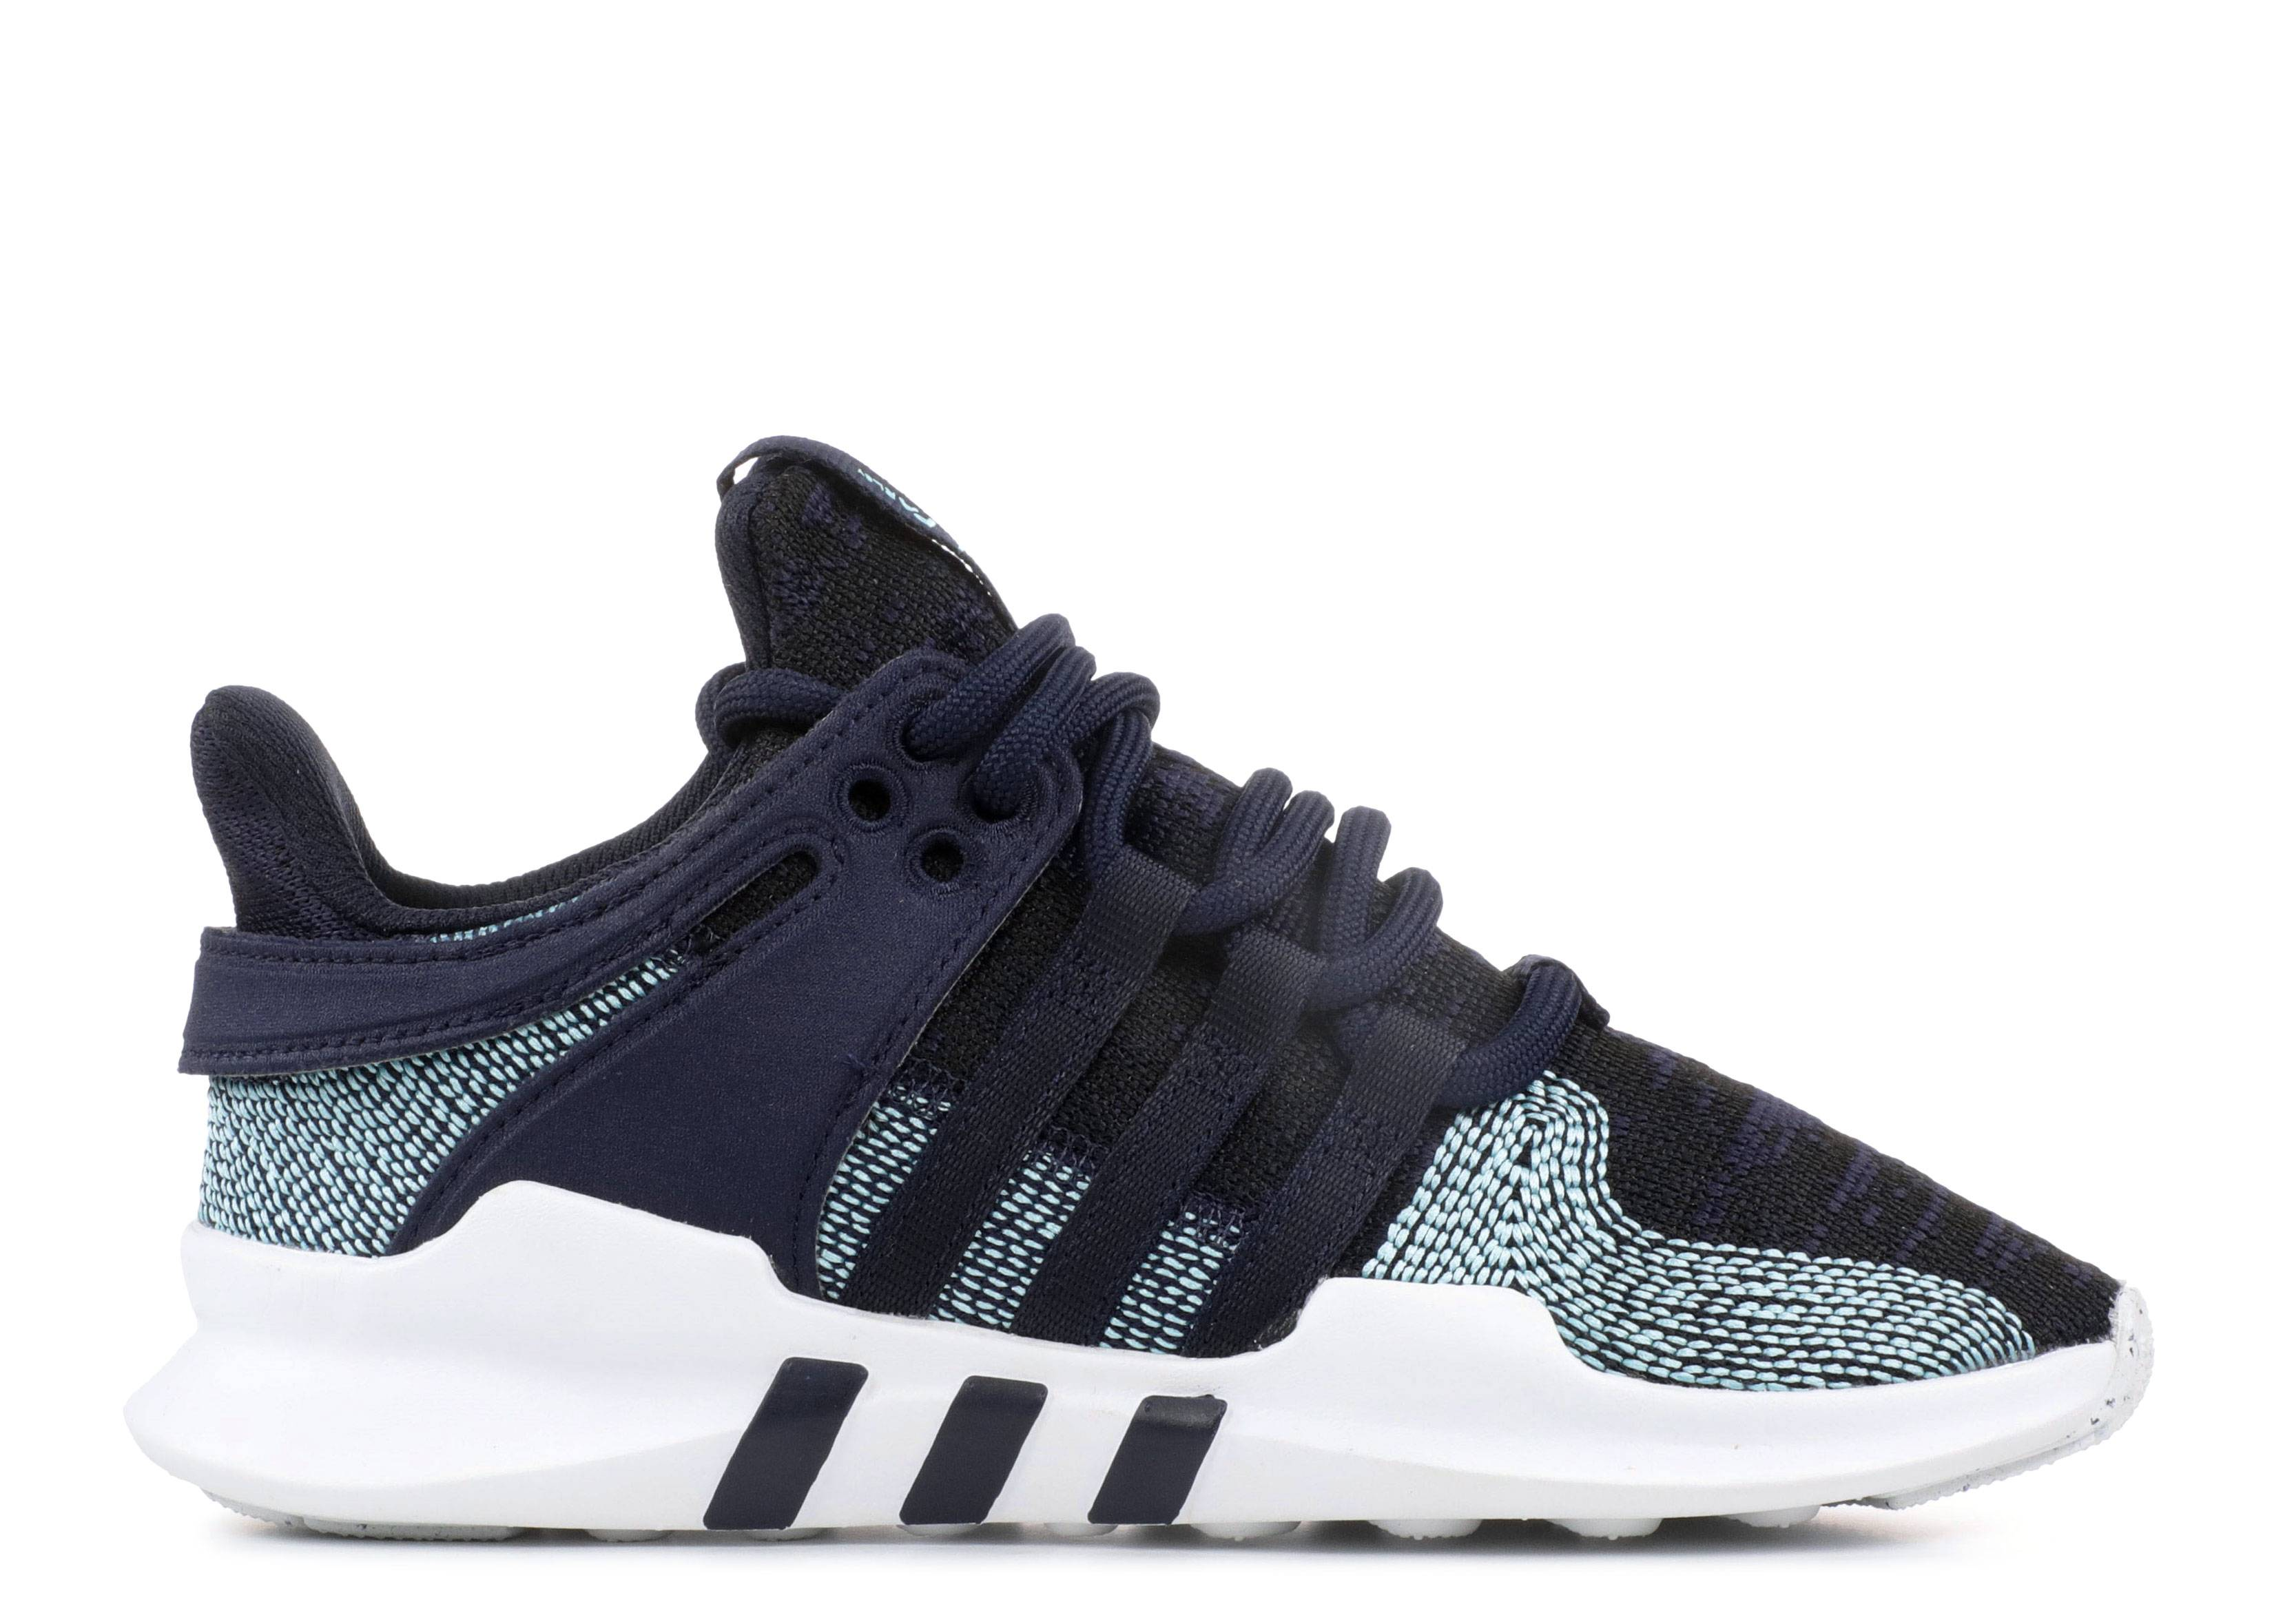 Adidas EQT Support ADV CK Parley (CQ0299) Blue Size 8 US Women's